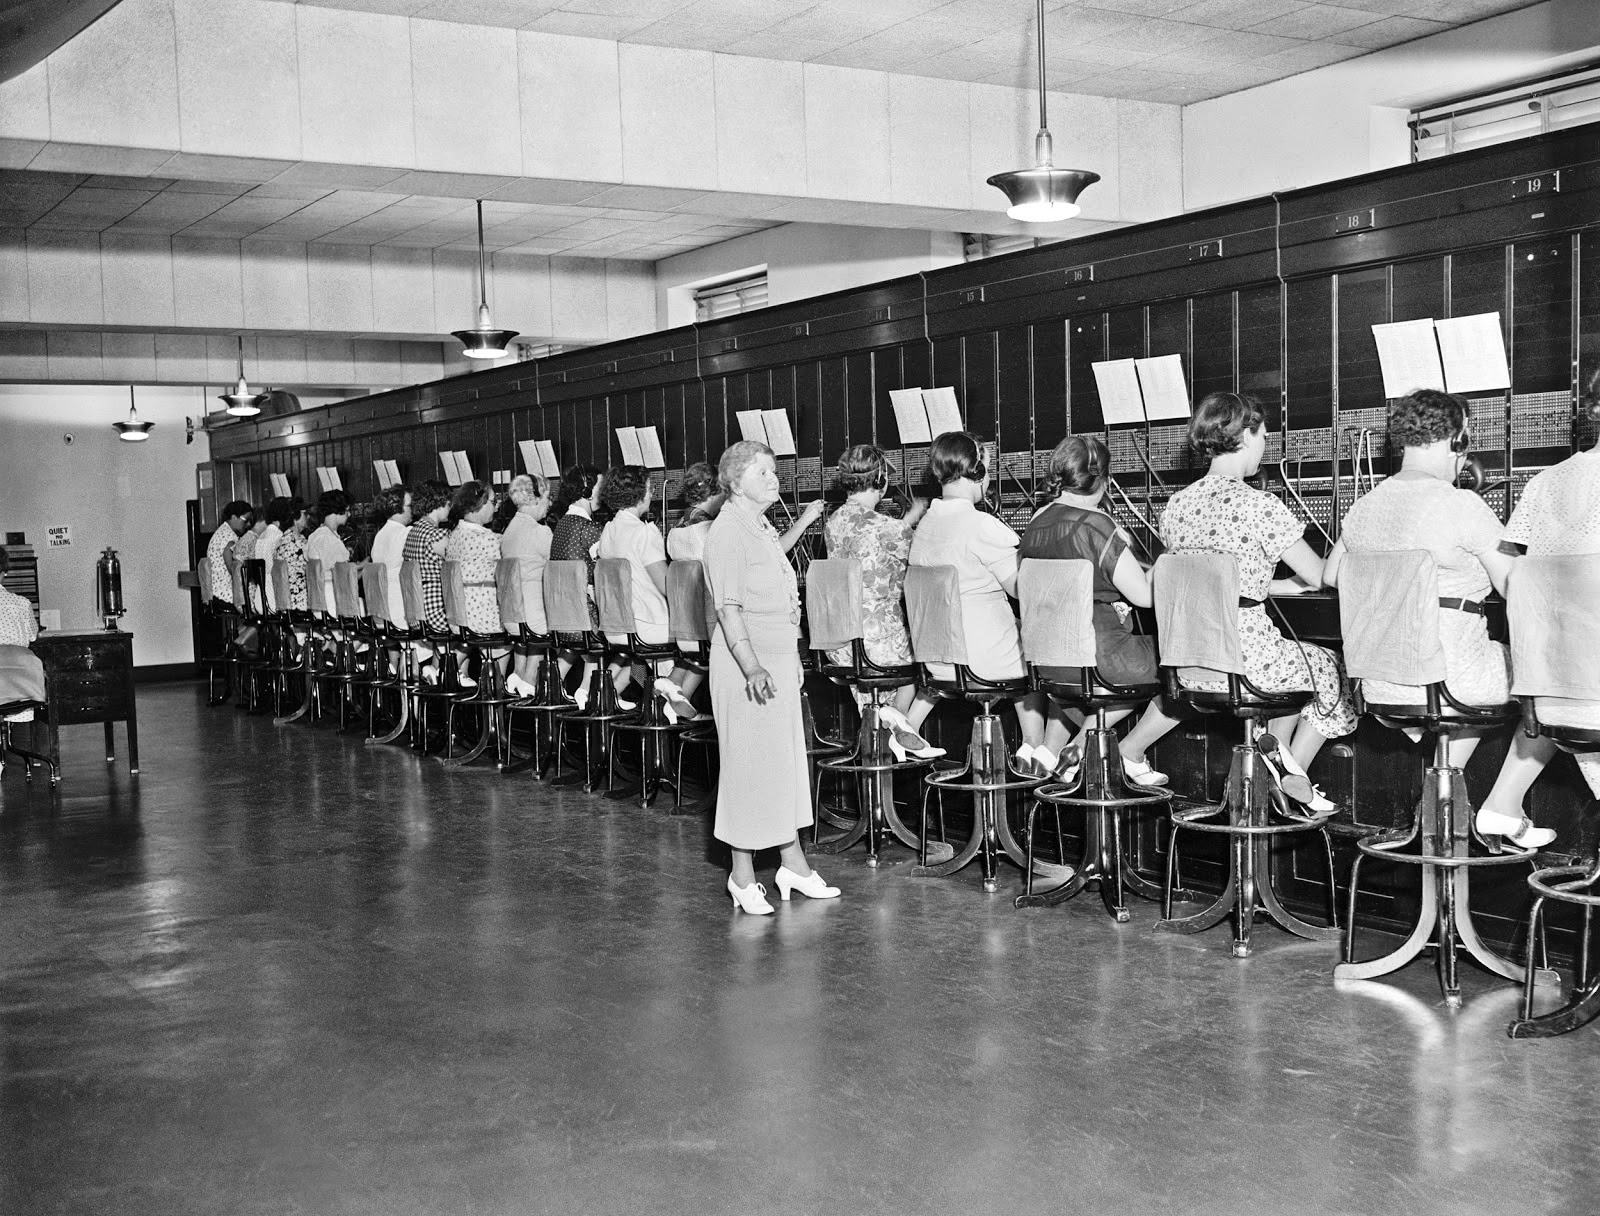 When Miss Harriot Daley Was Appointed Telephone Operator At The United  States Capitol In 1898 There Were Only 51 Stations On The Switchboard.